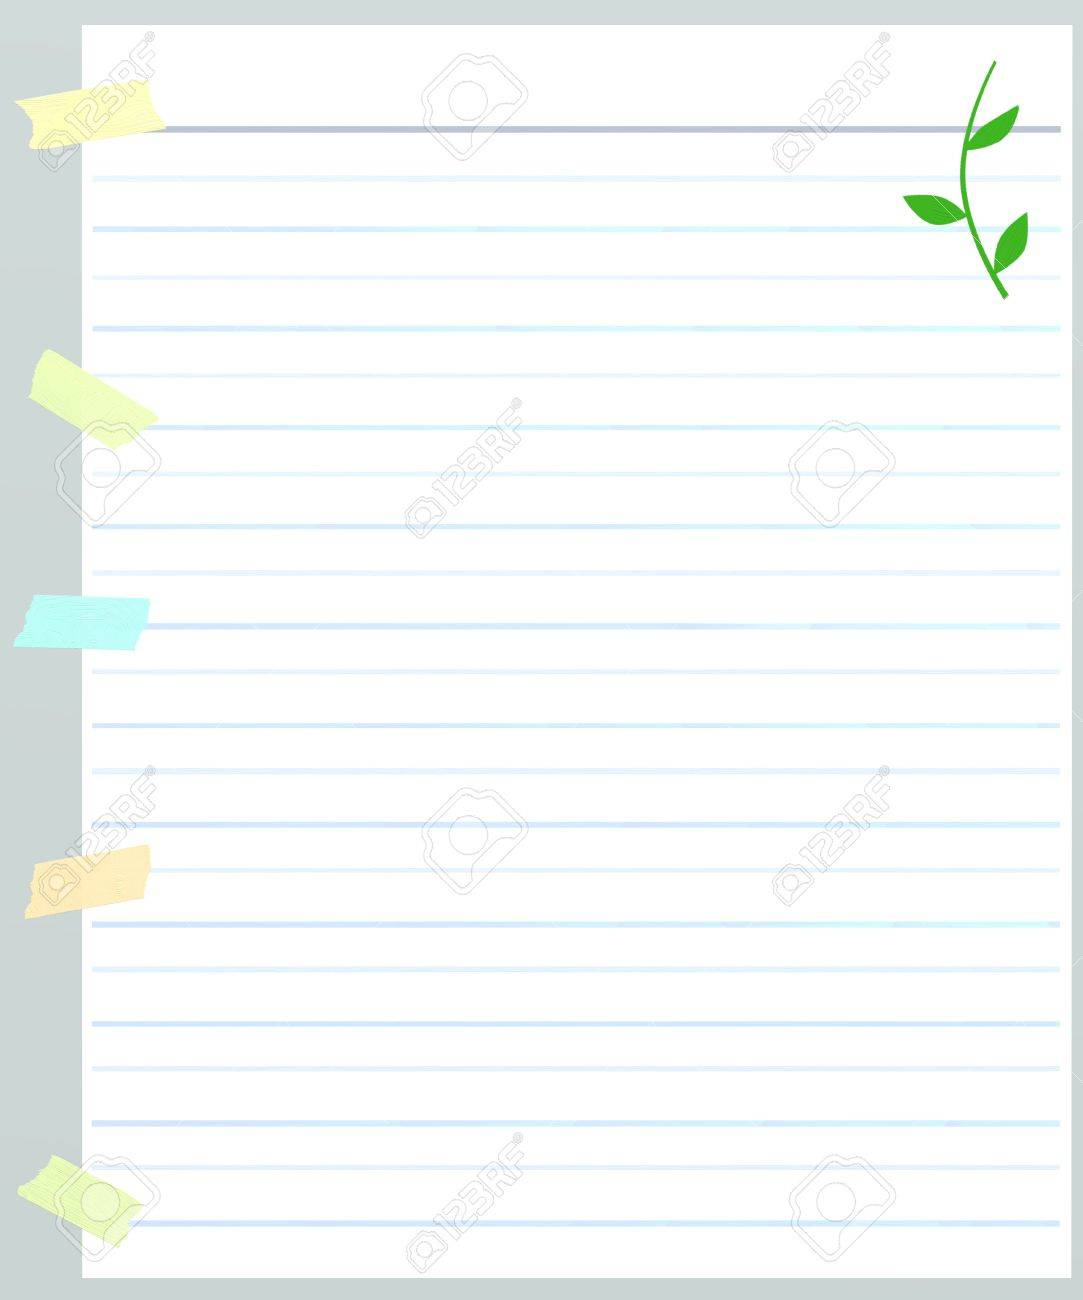 Printable Lines Paper free printable lined paper template – Free Lined Paper to Print